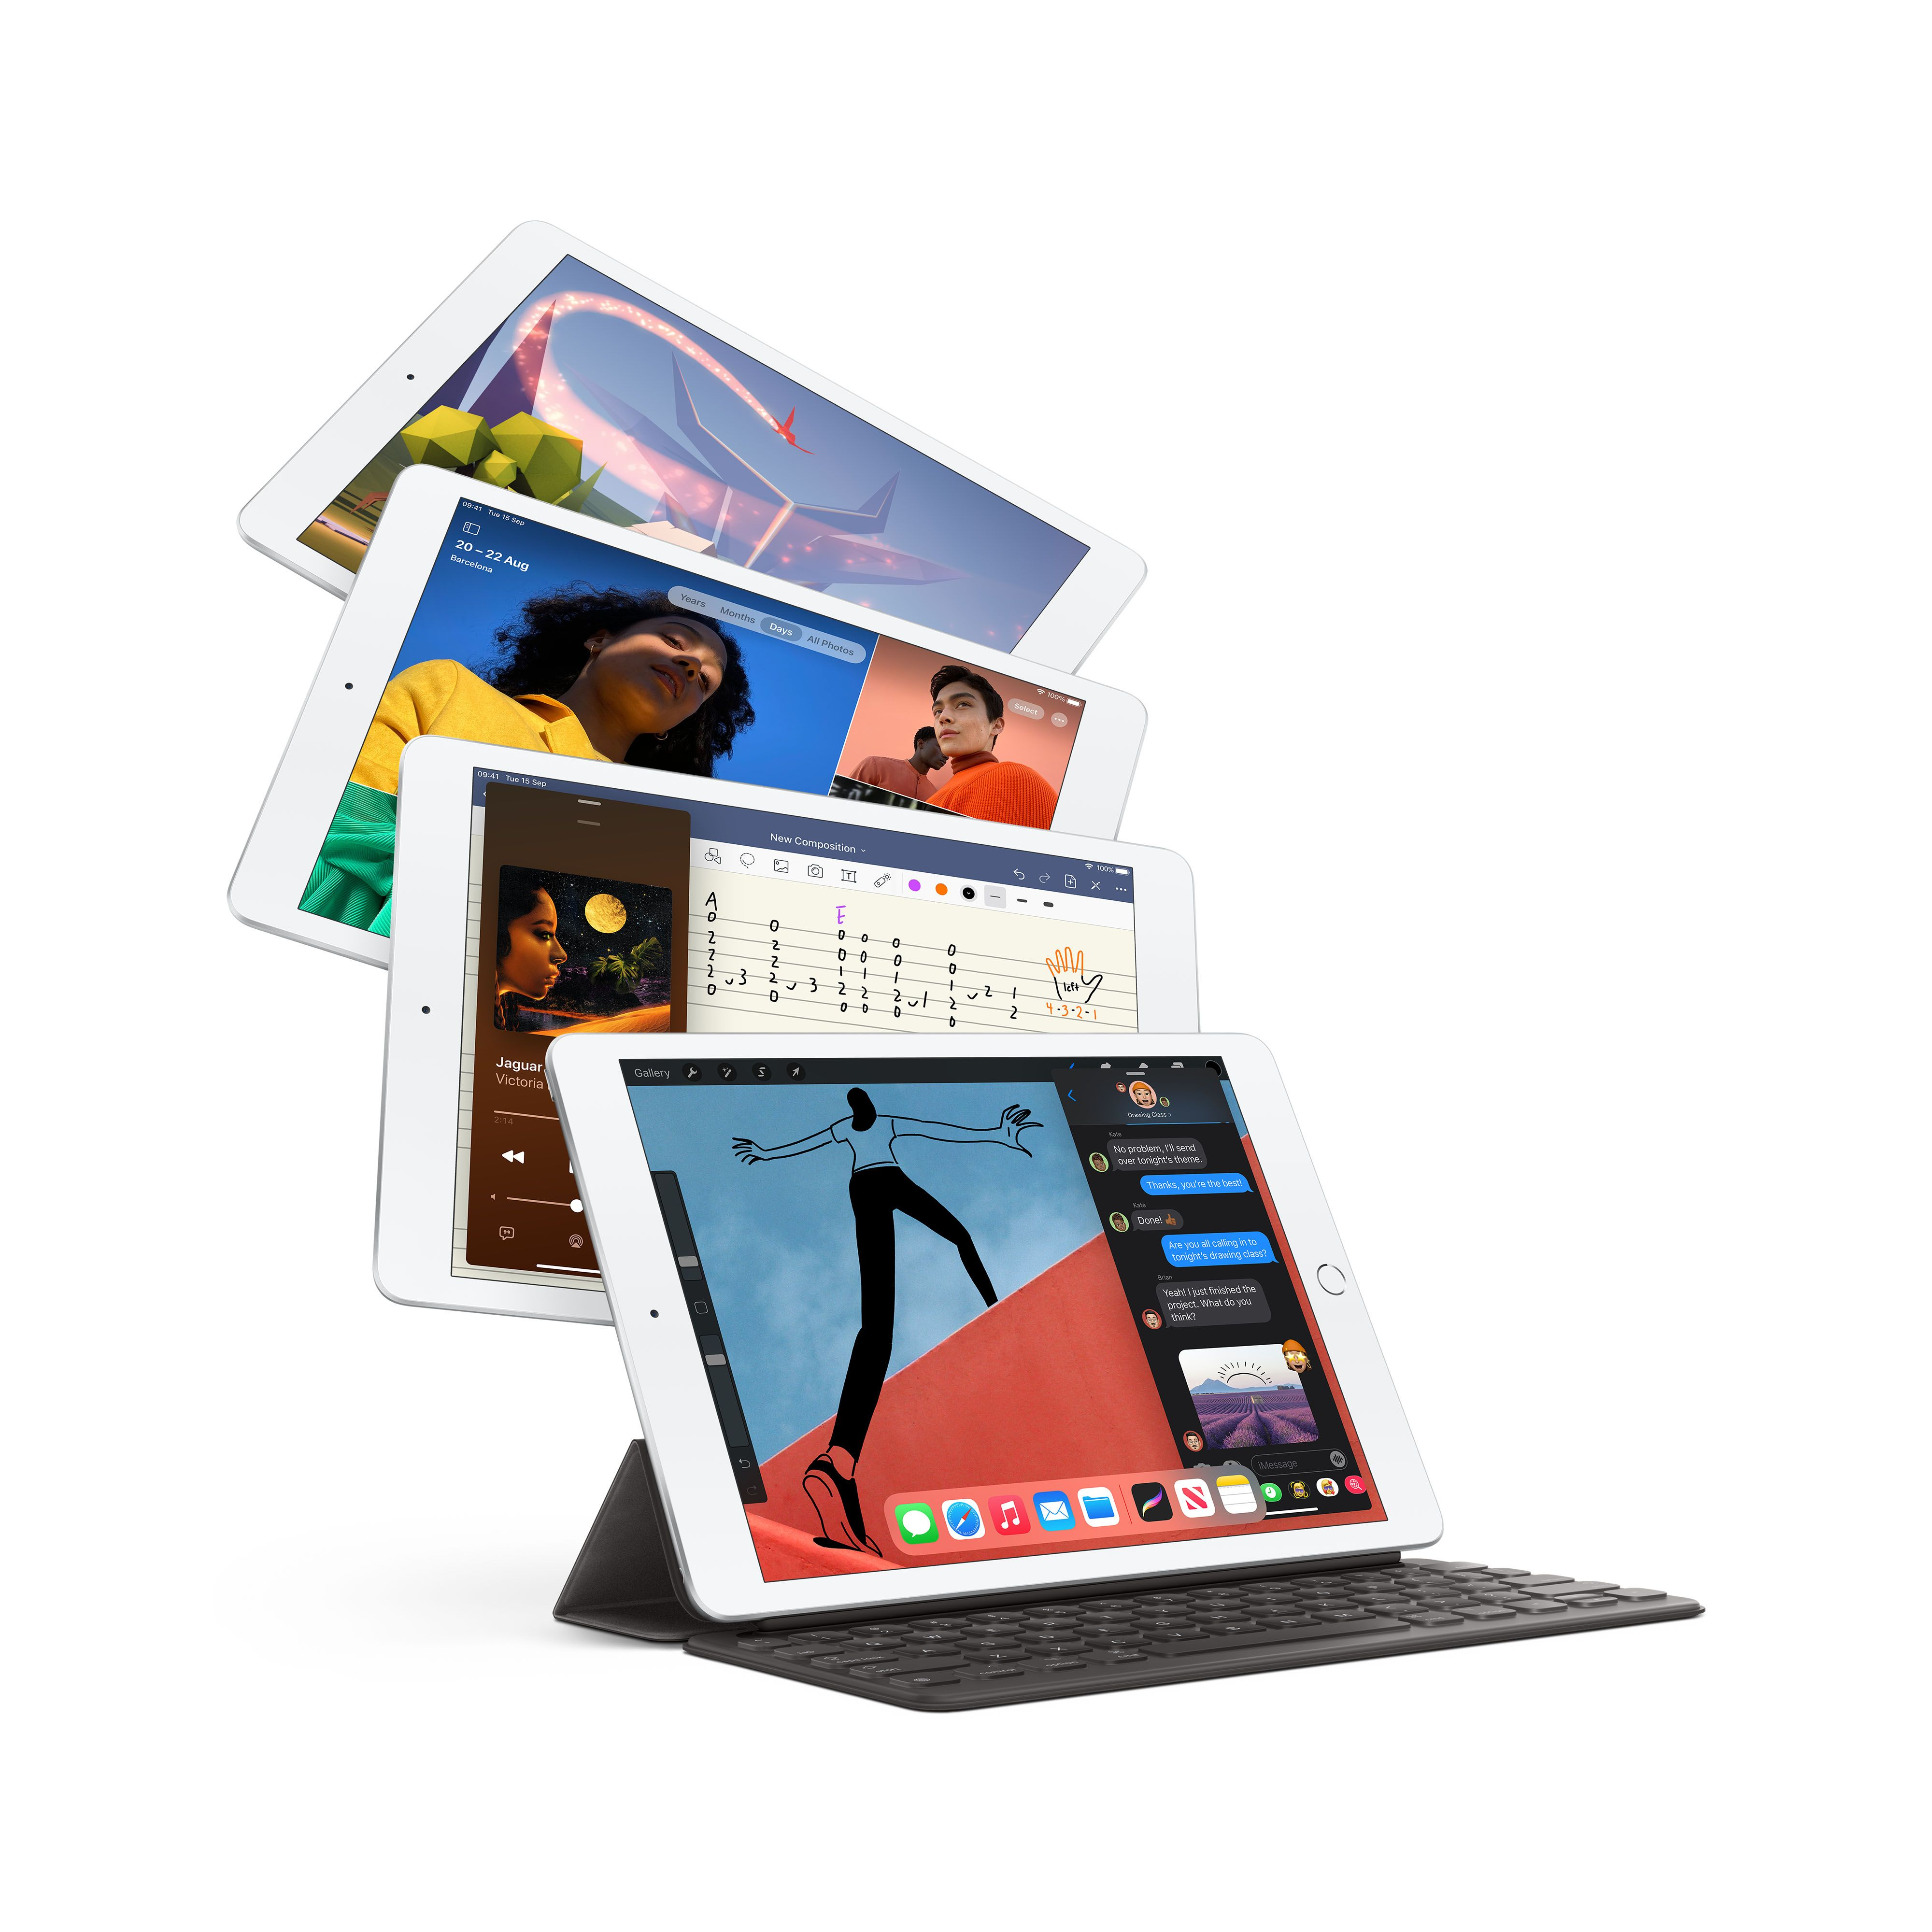 Set of iPad devices for Education